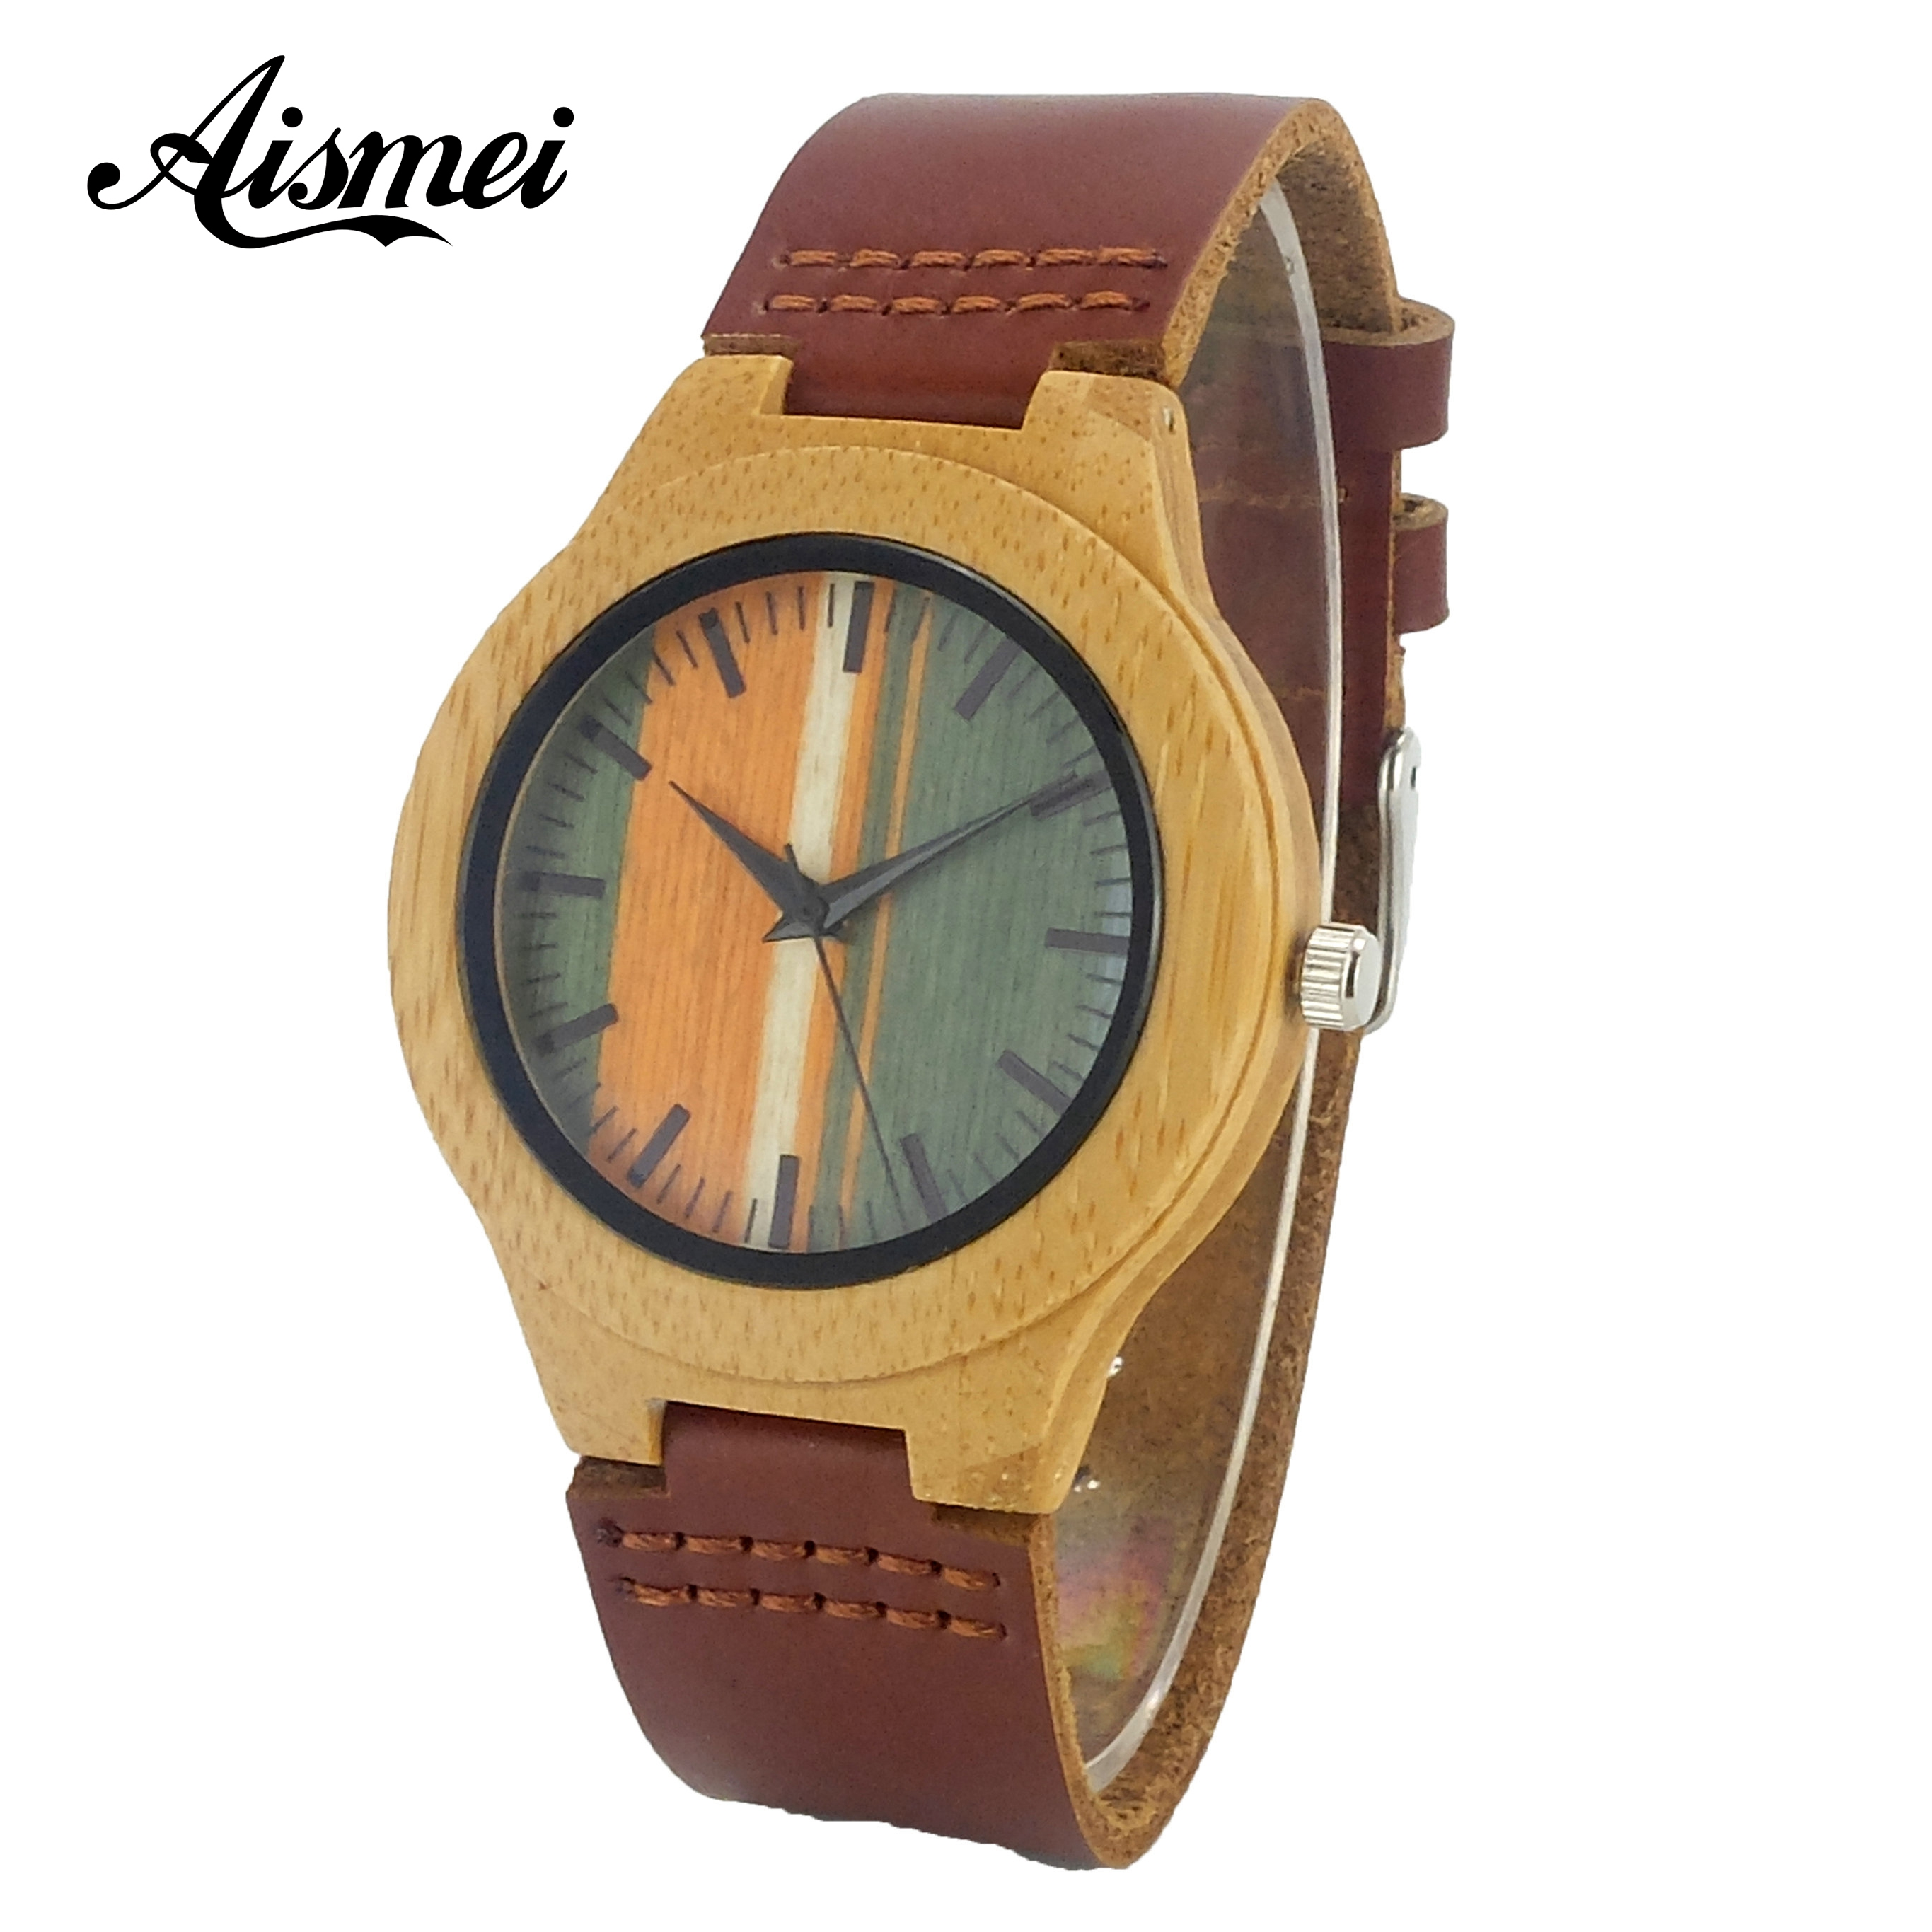 2018 Luxury Brand Wood Women Watches Ladies Genuine Leather Band Watch Wooden Wristwatches relogio feminino drop shipping bobo bird brand new sun glasses men square wood oversized zebra wood sunglasses women with wooden box oculos 2017